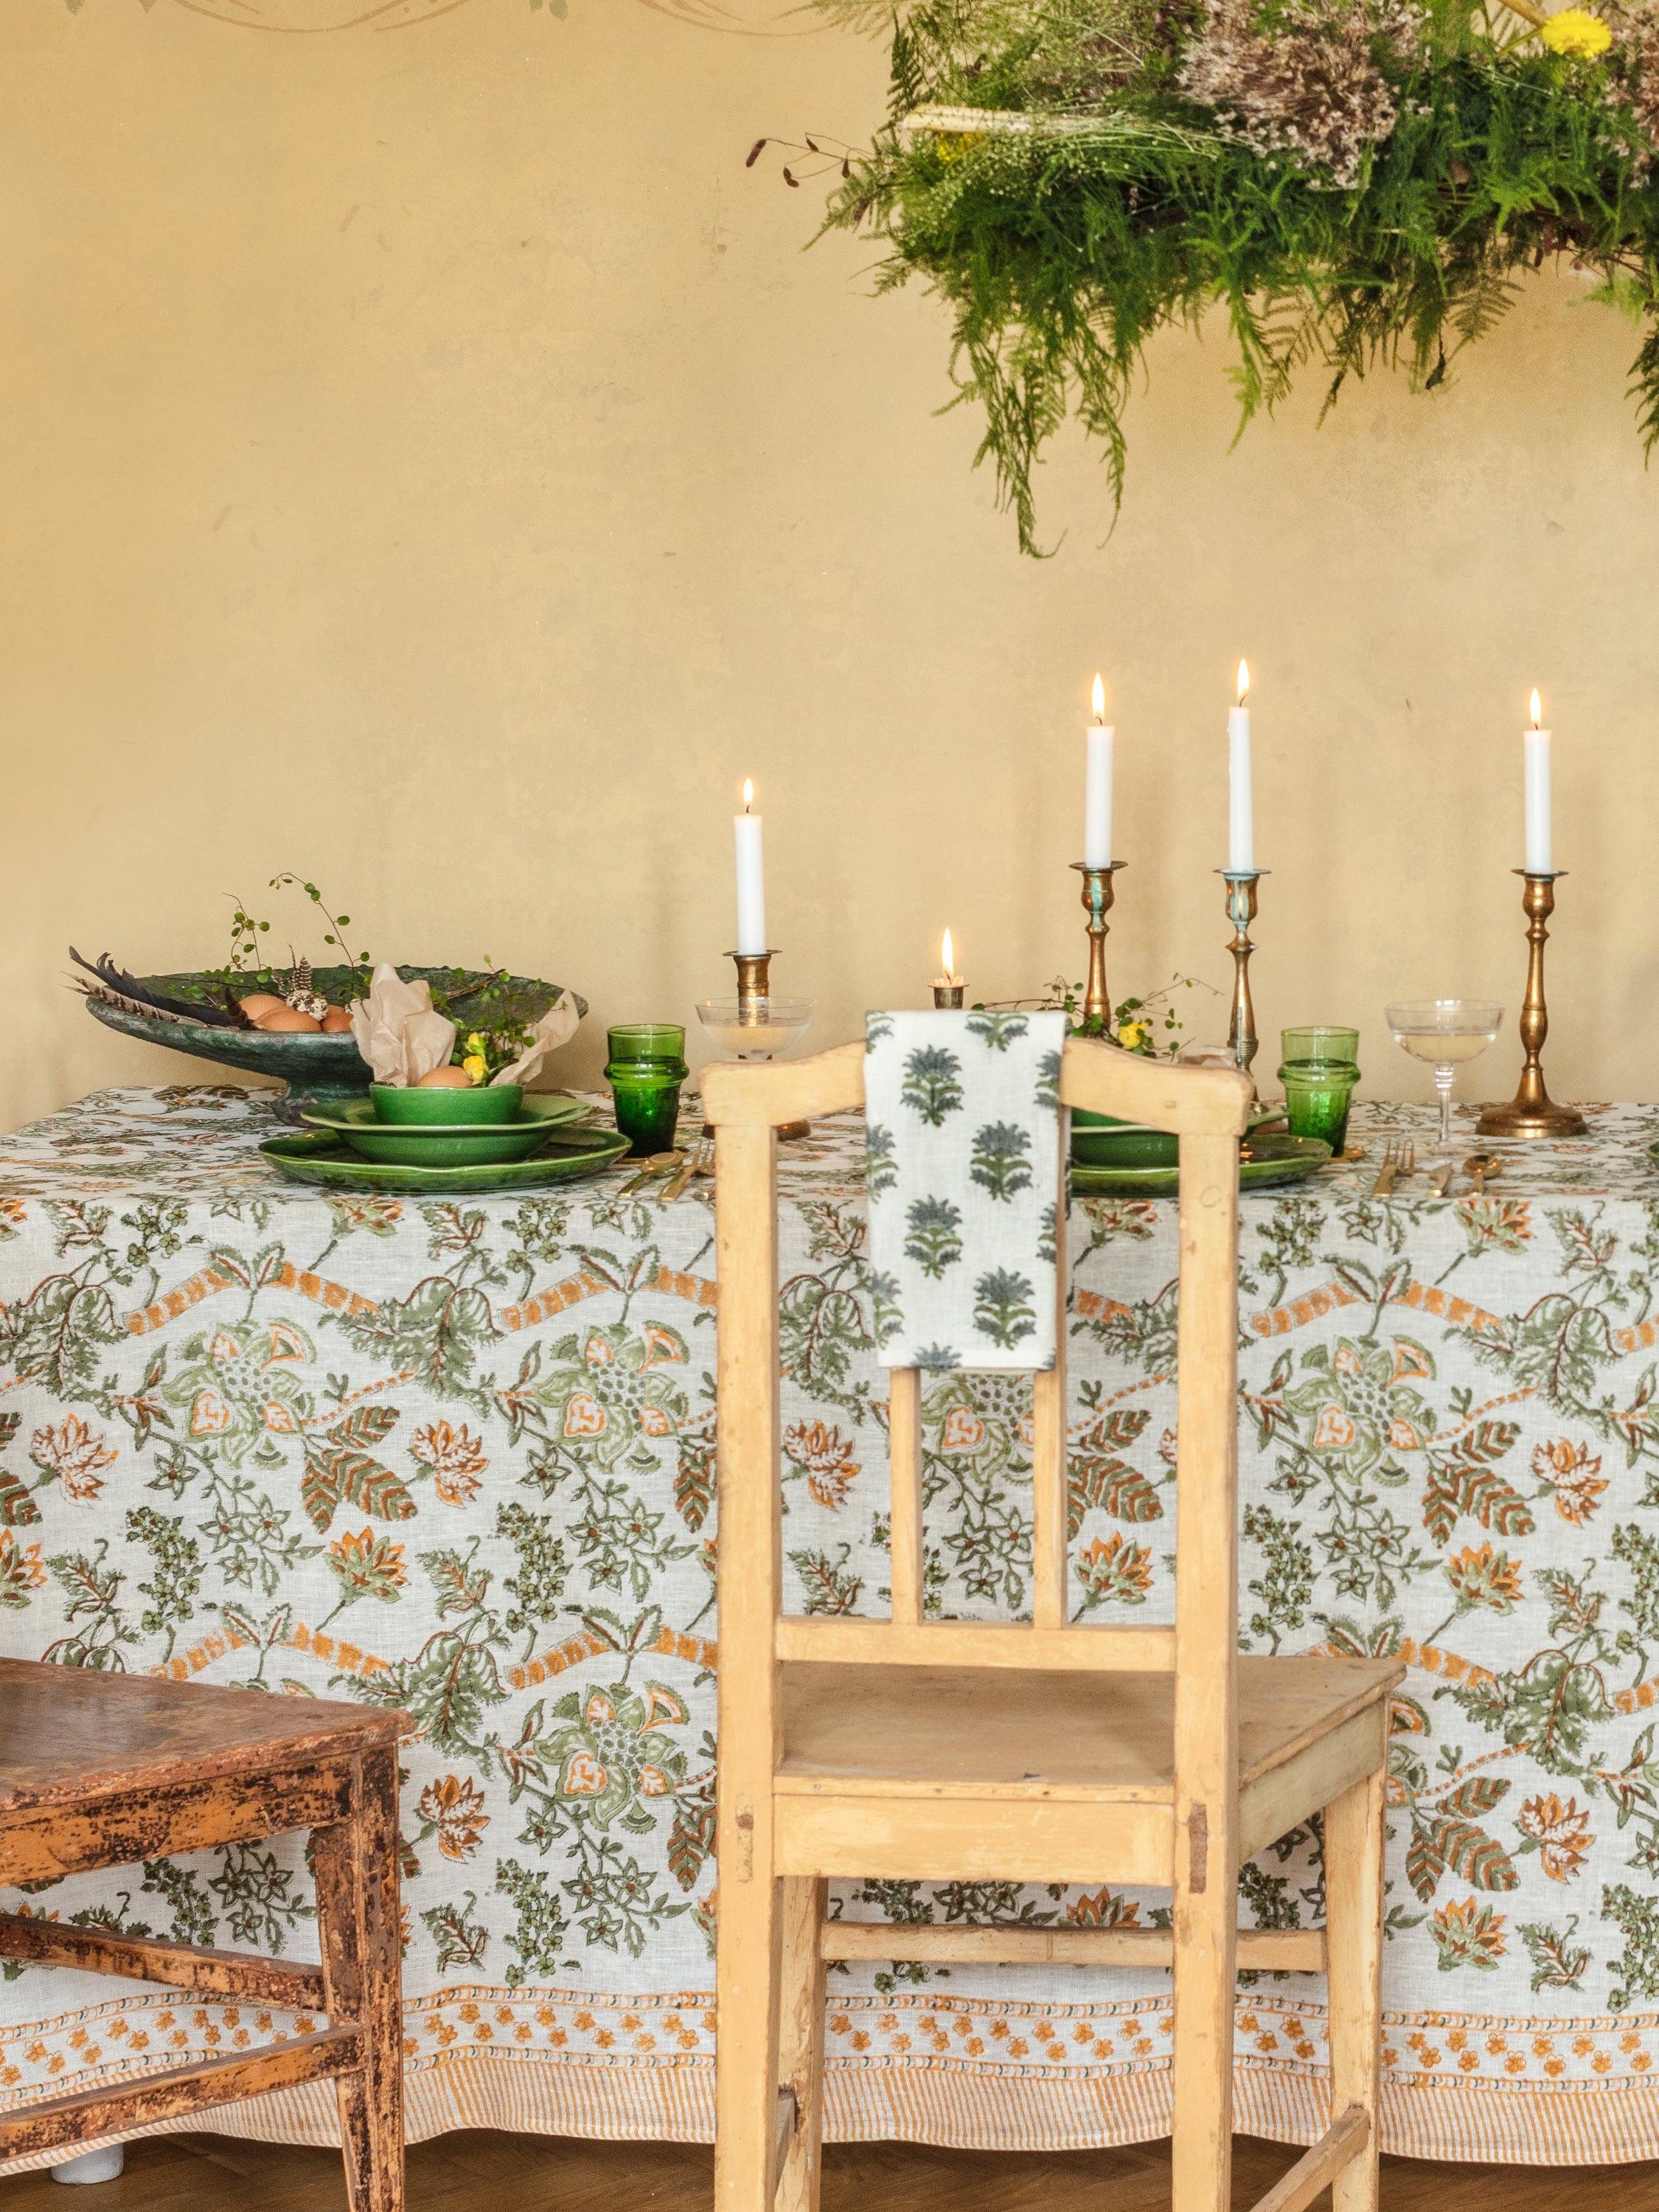 Linen Tablecloth with Floral print in Ochre